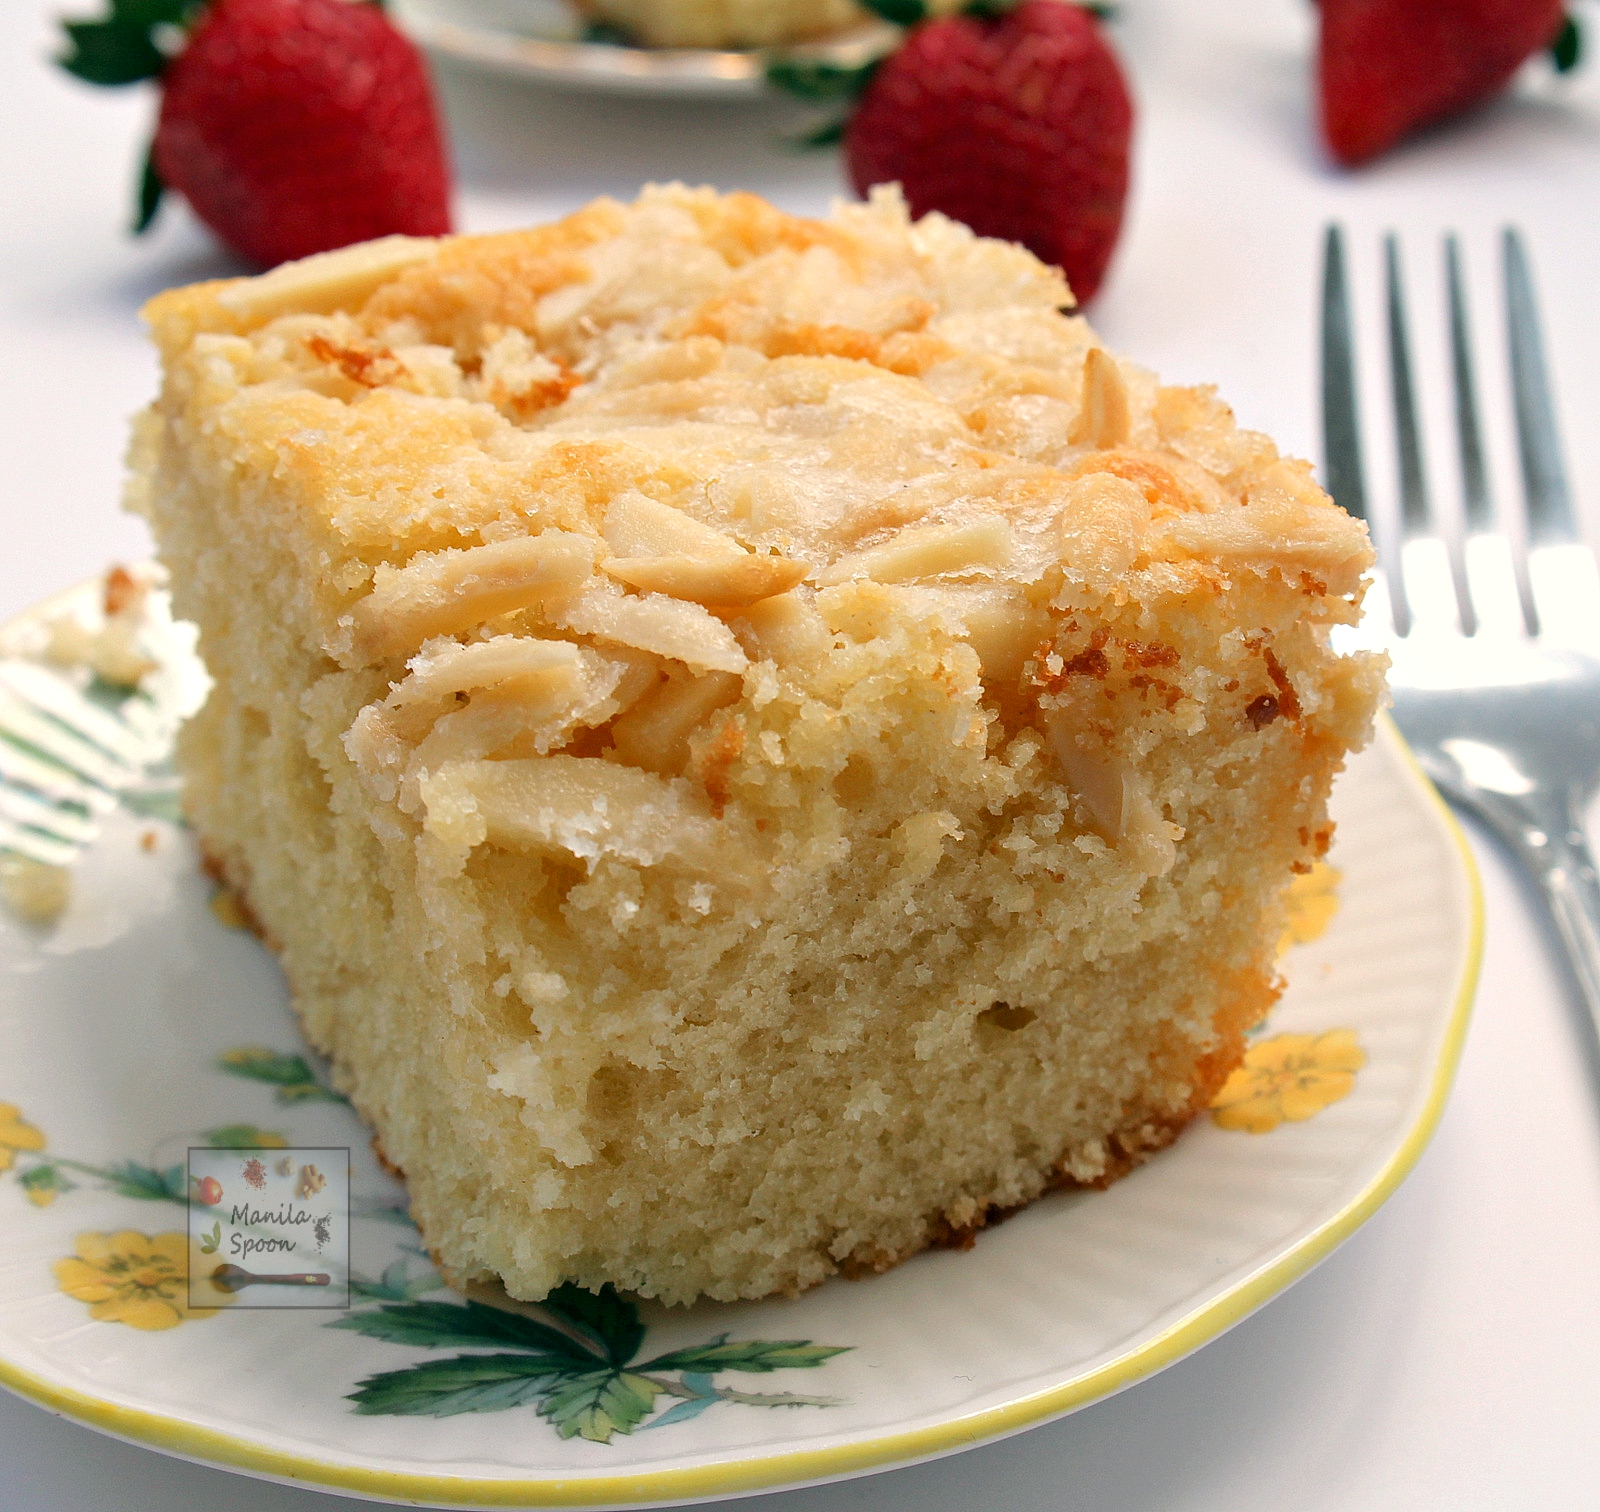 Butter Cake - luxurious is this sponge cake with a generous coating of butter and sugar and a sprinkling of almonds for extra crunch! Serve warm, cold, or room temperature this Butter Cake is always moist and scrumptious!